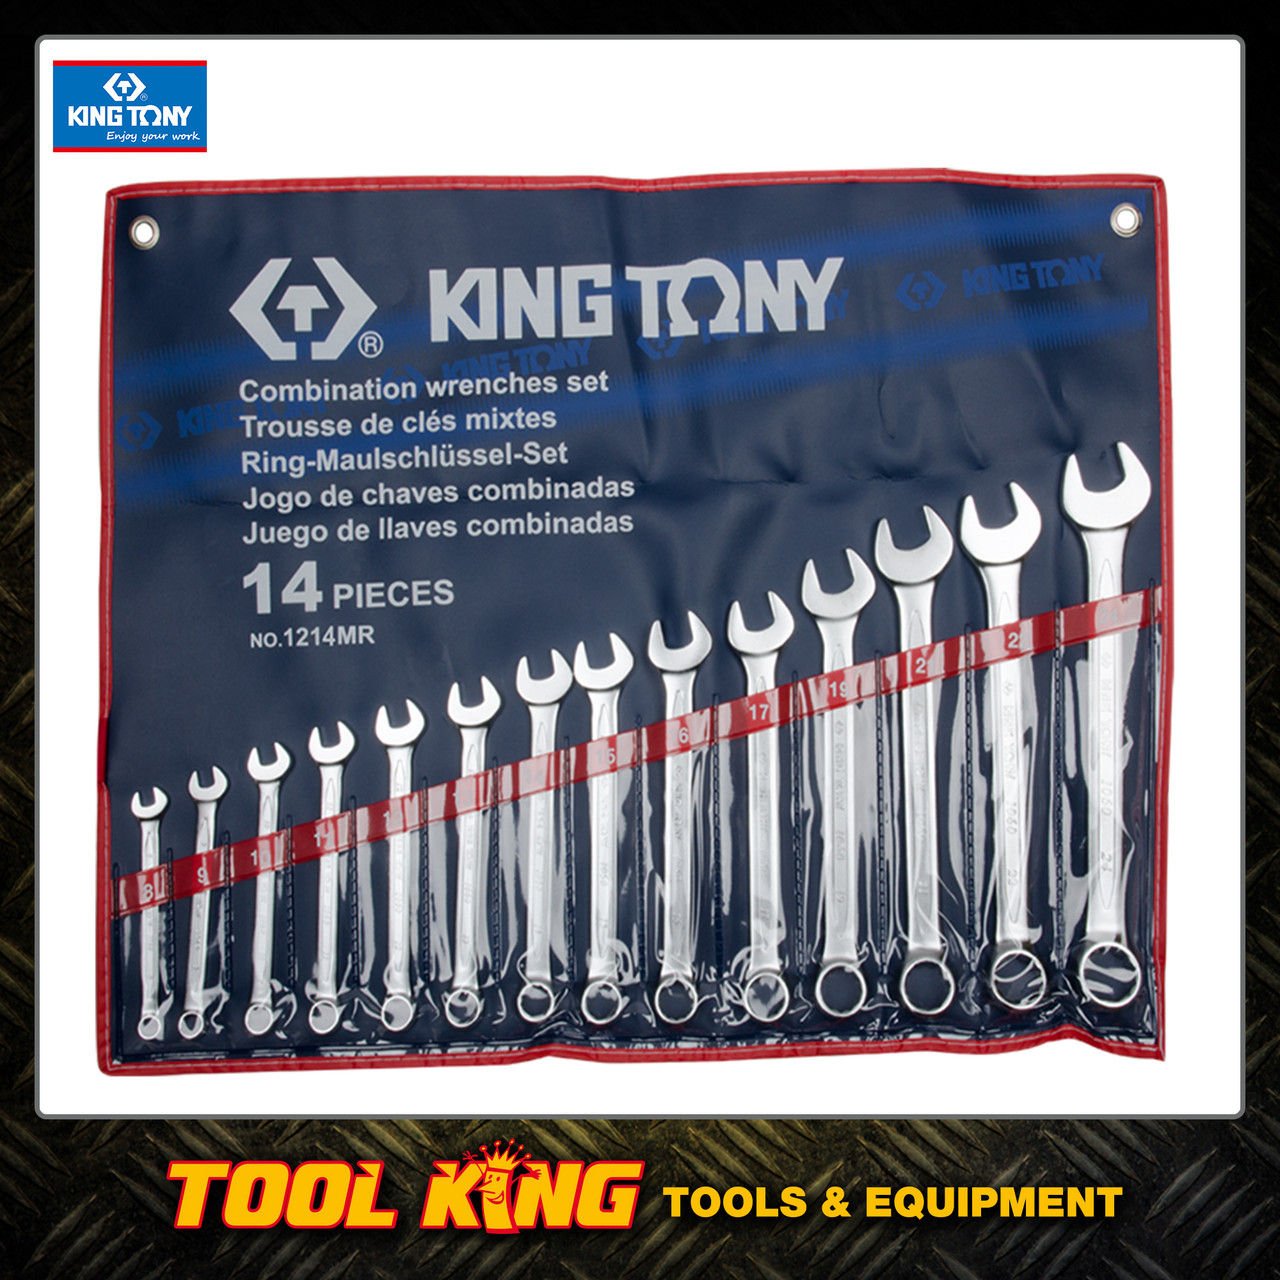 SPANNER SET COMBINATION 14pc metric King Tony 1214MR